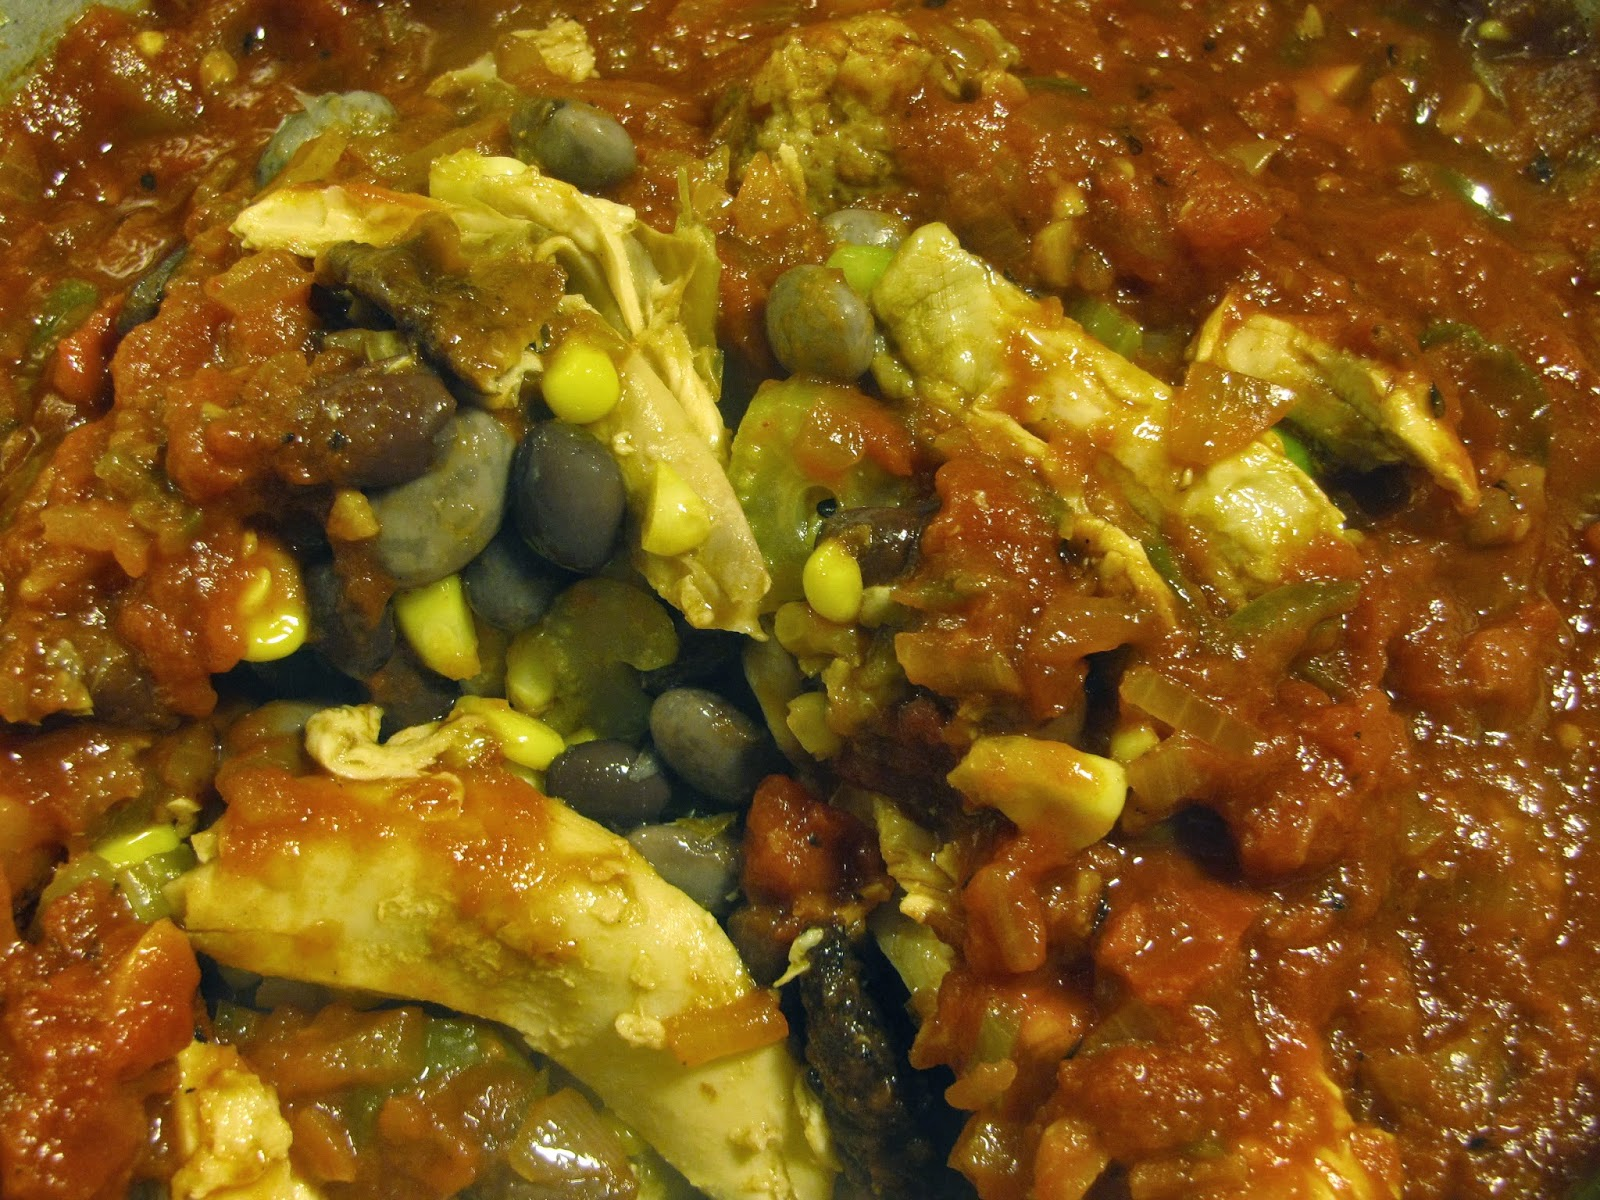 shredded chicken, beans, corn, celery, tomato sauce coming together for a chicken chili